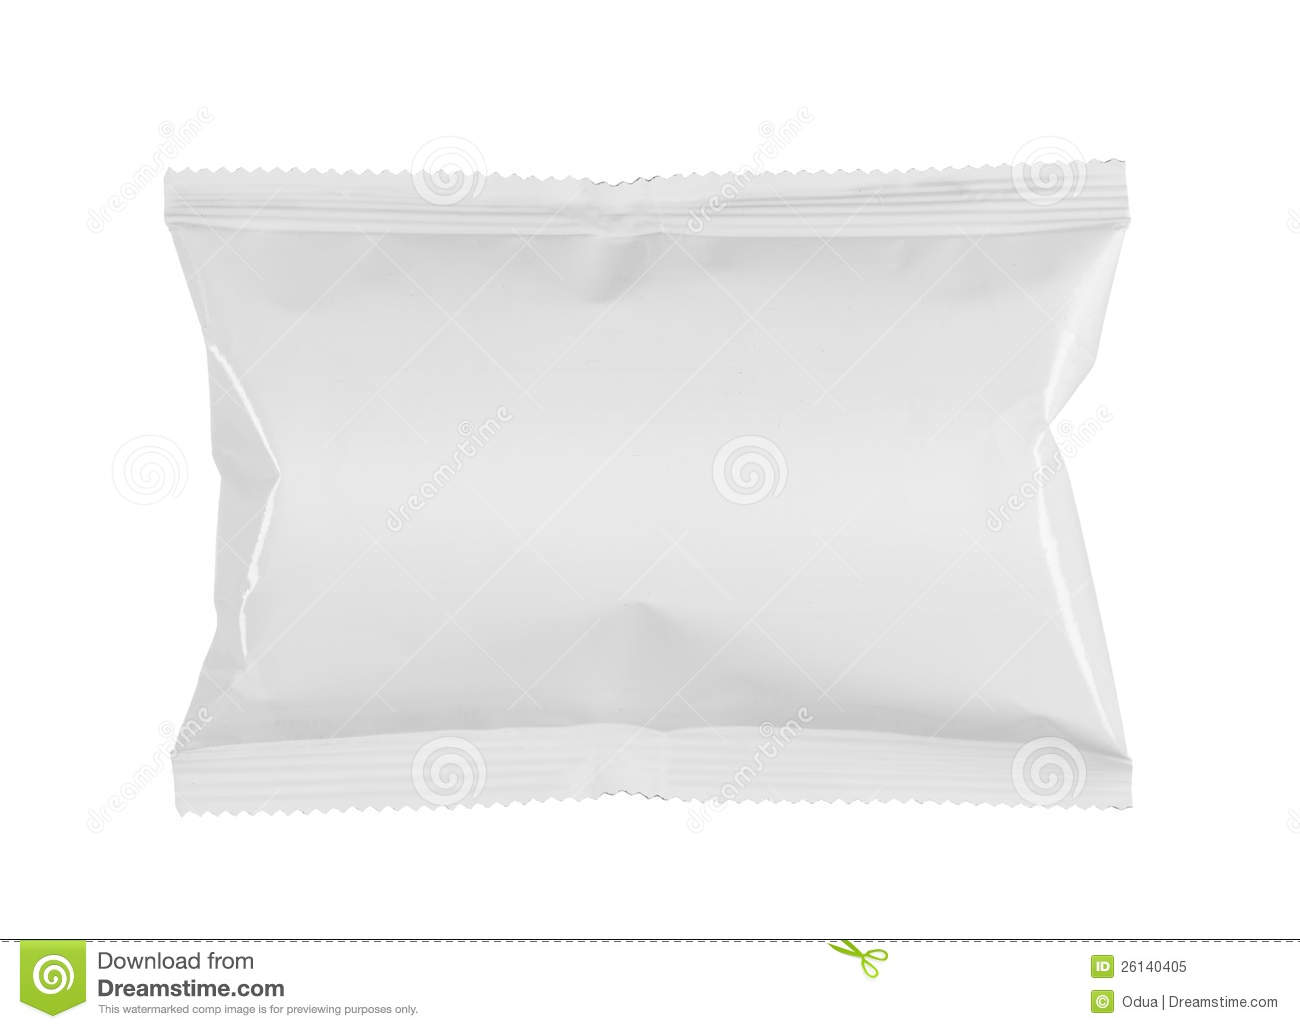 Snack Product Plastic Packaging Royalty Free Stock Photo.